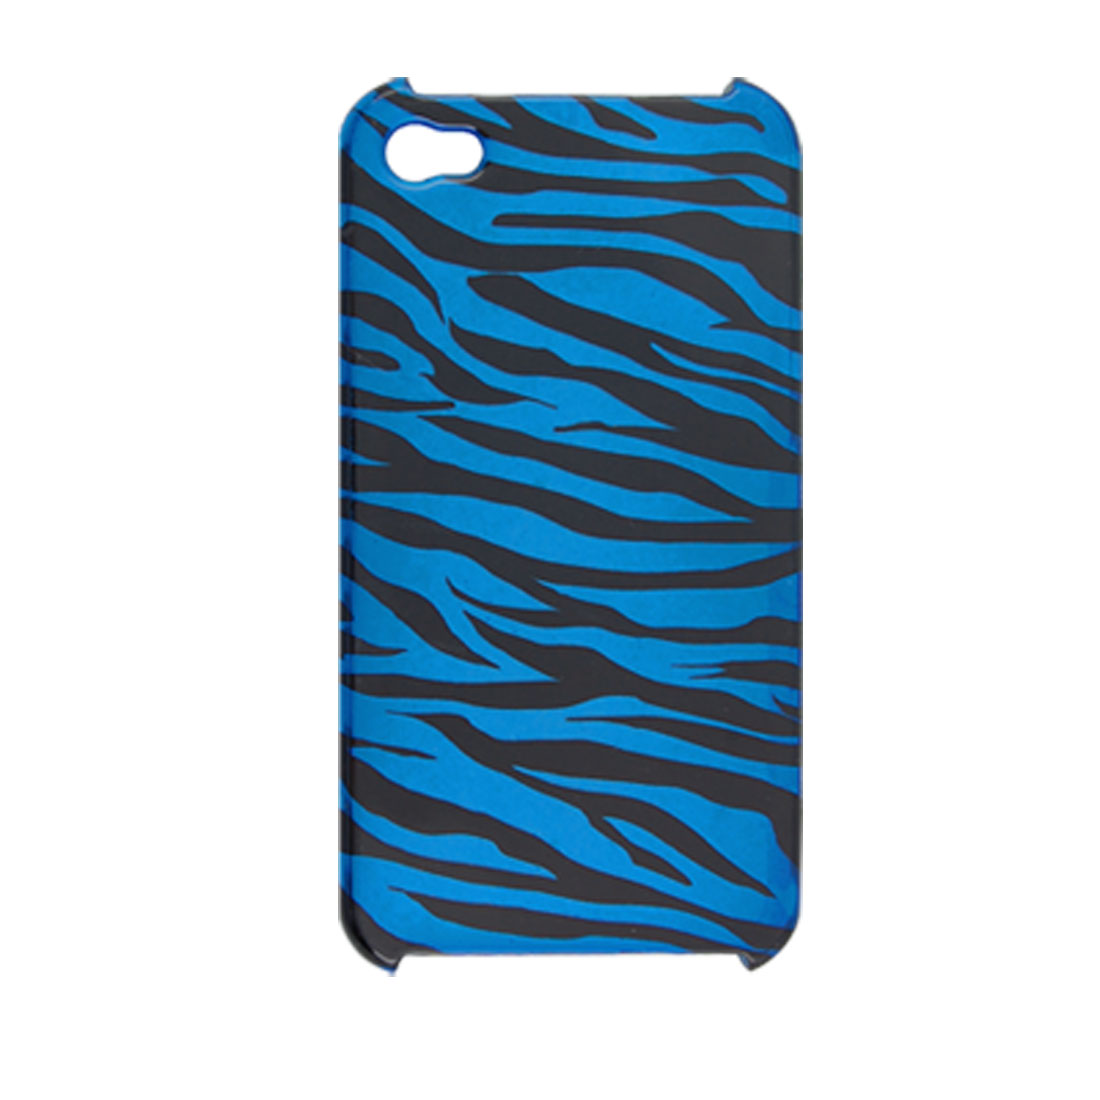 Zebra Print Hard Plastic Blue Back Case Cover for Apple iPhone 4 4G